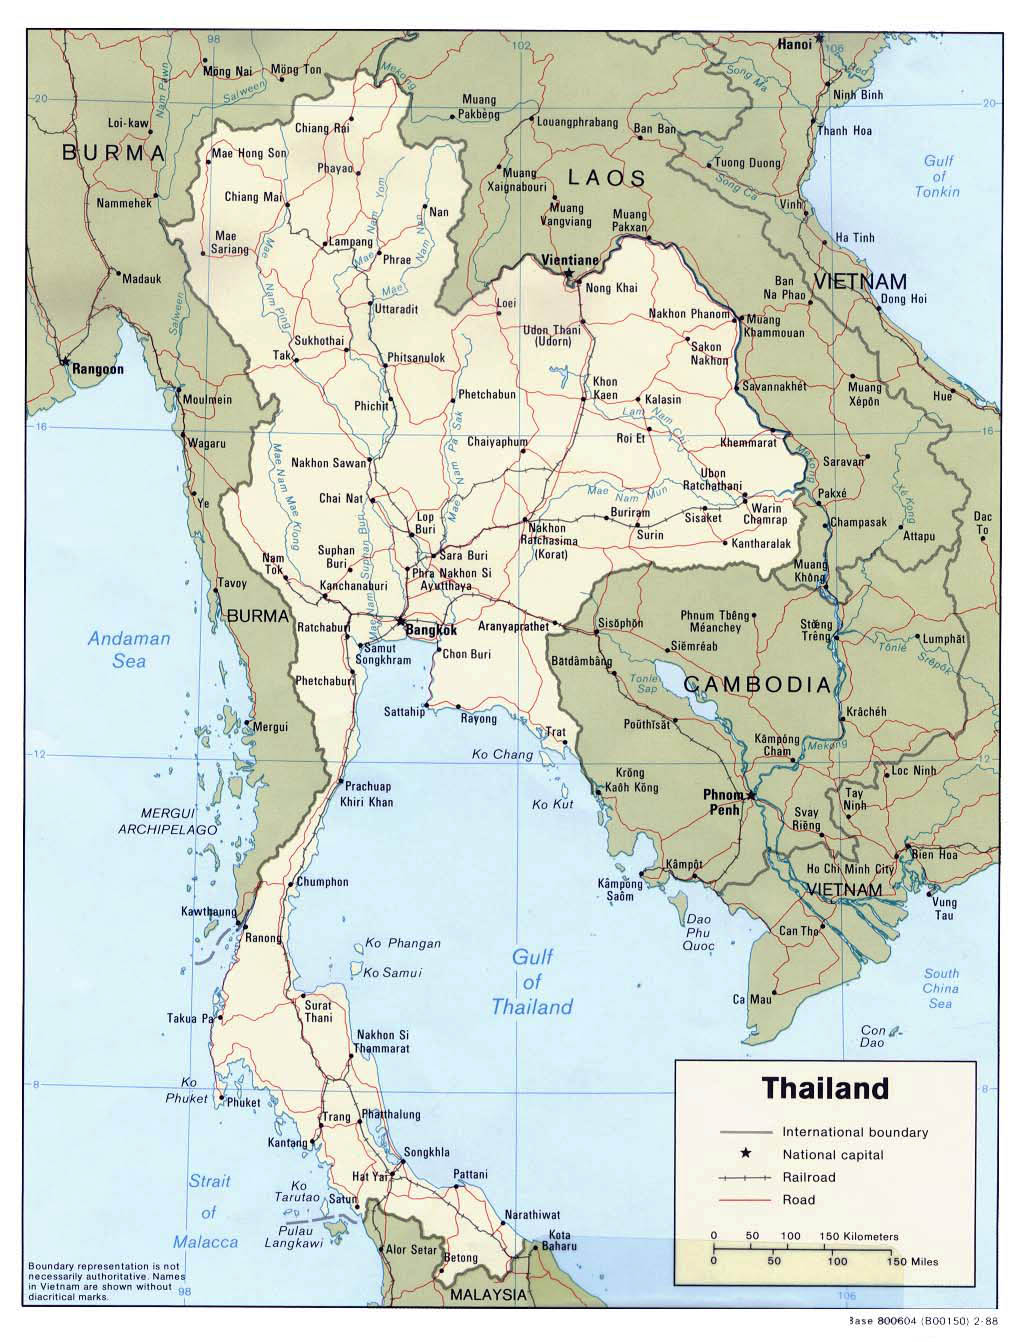 Political Map Of Thailand With Roads And Major Cities Vidiani - Map of thailand cities